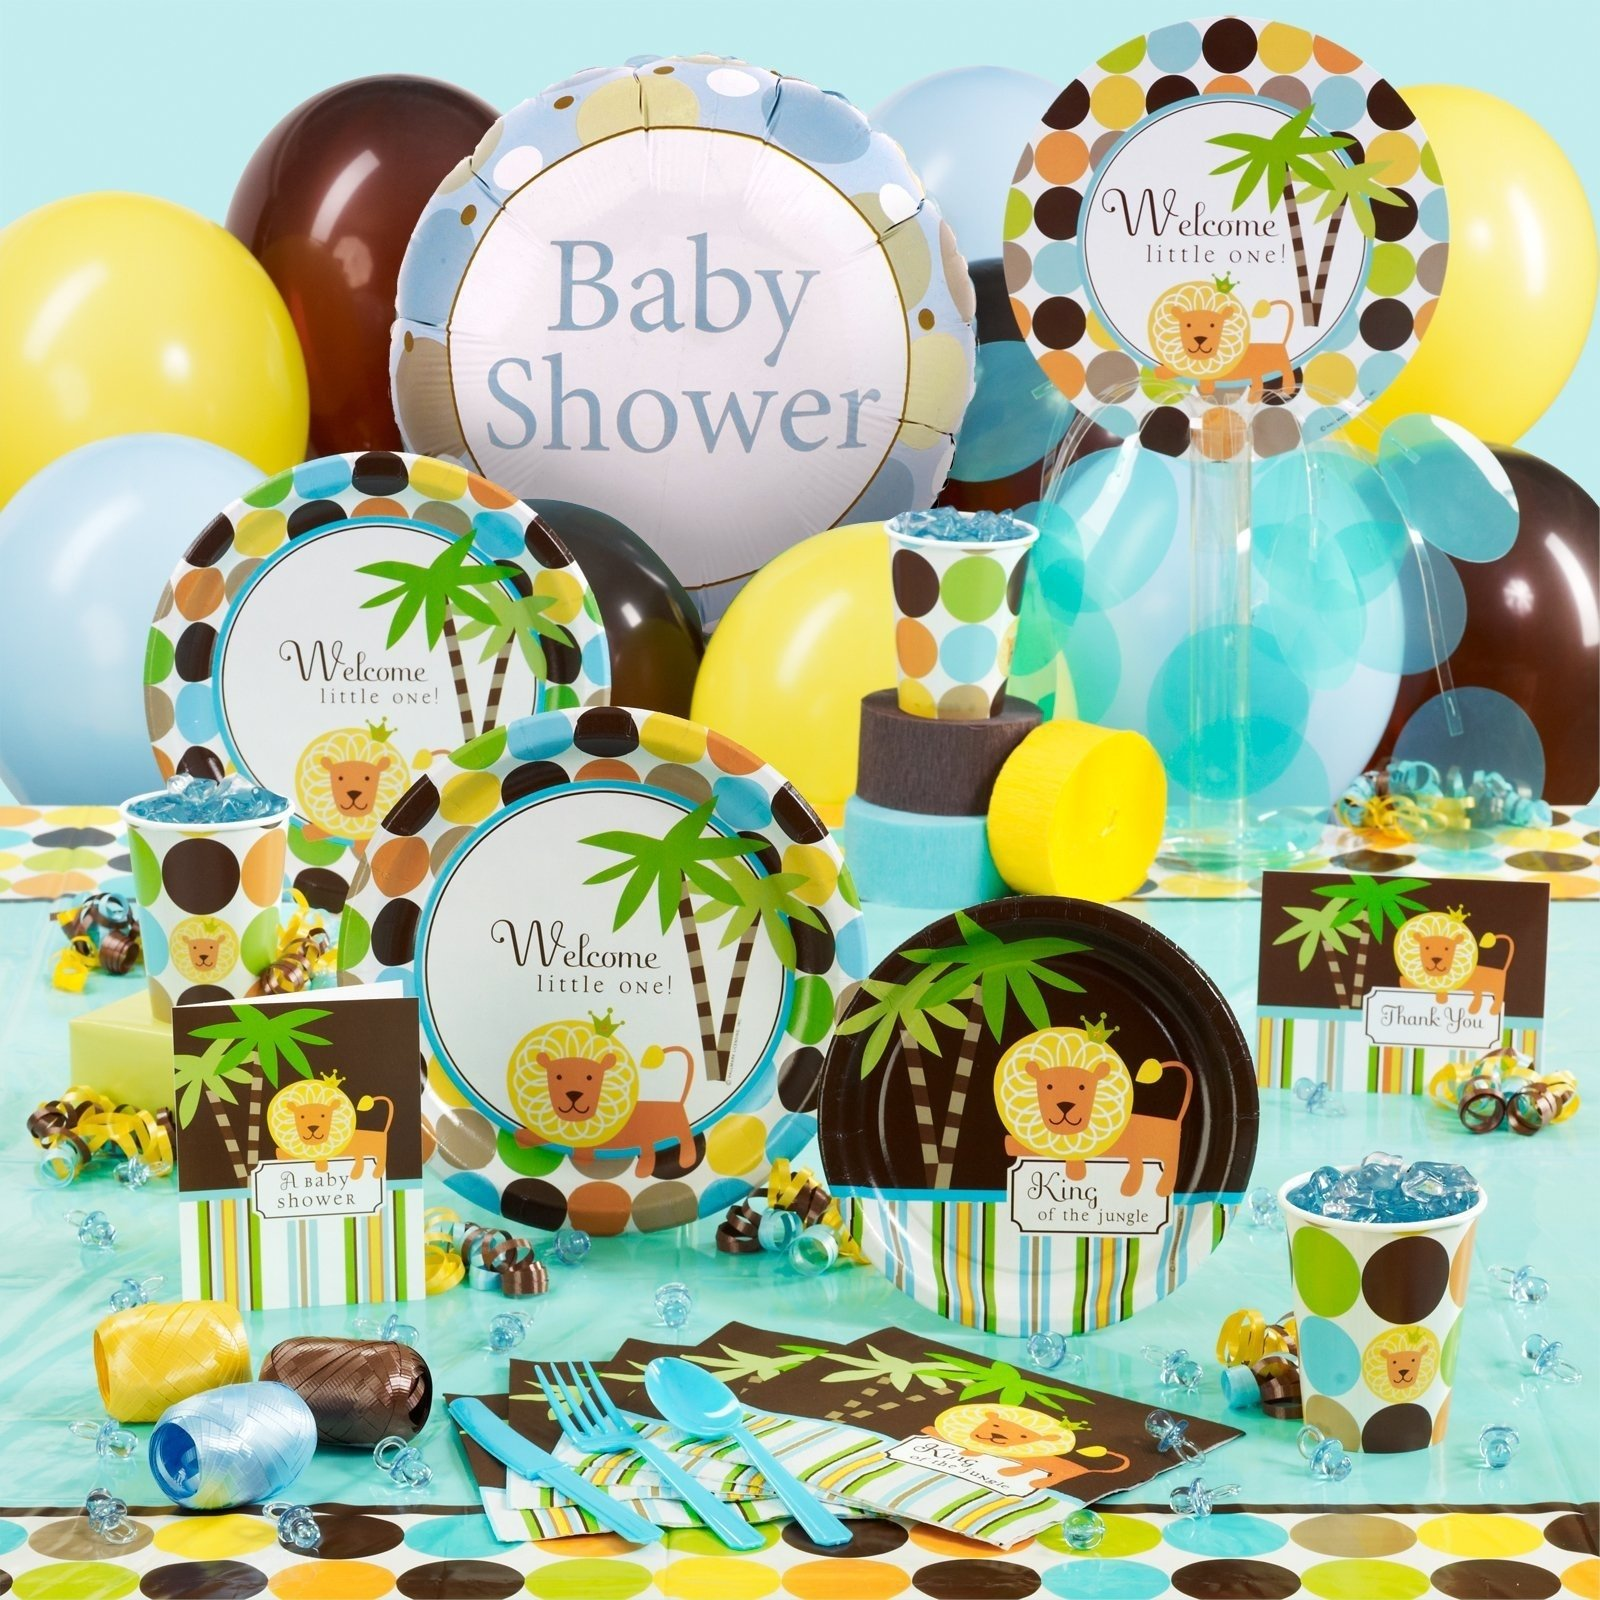 10 Great Jungle Safari Baby Shower Ideas party city jungle safari baby shower e280a2 baby showers ideas